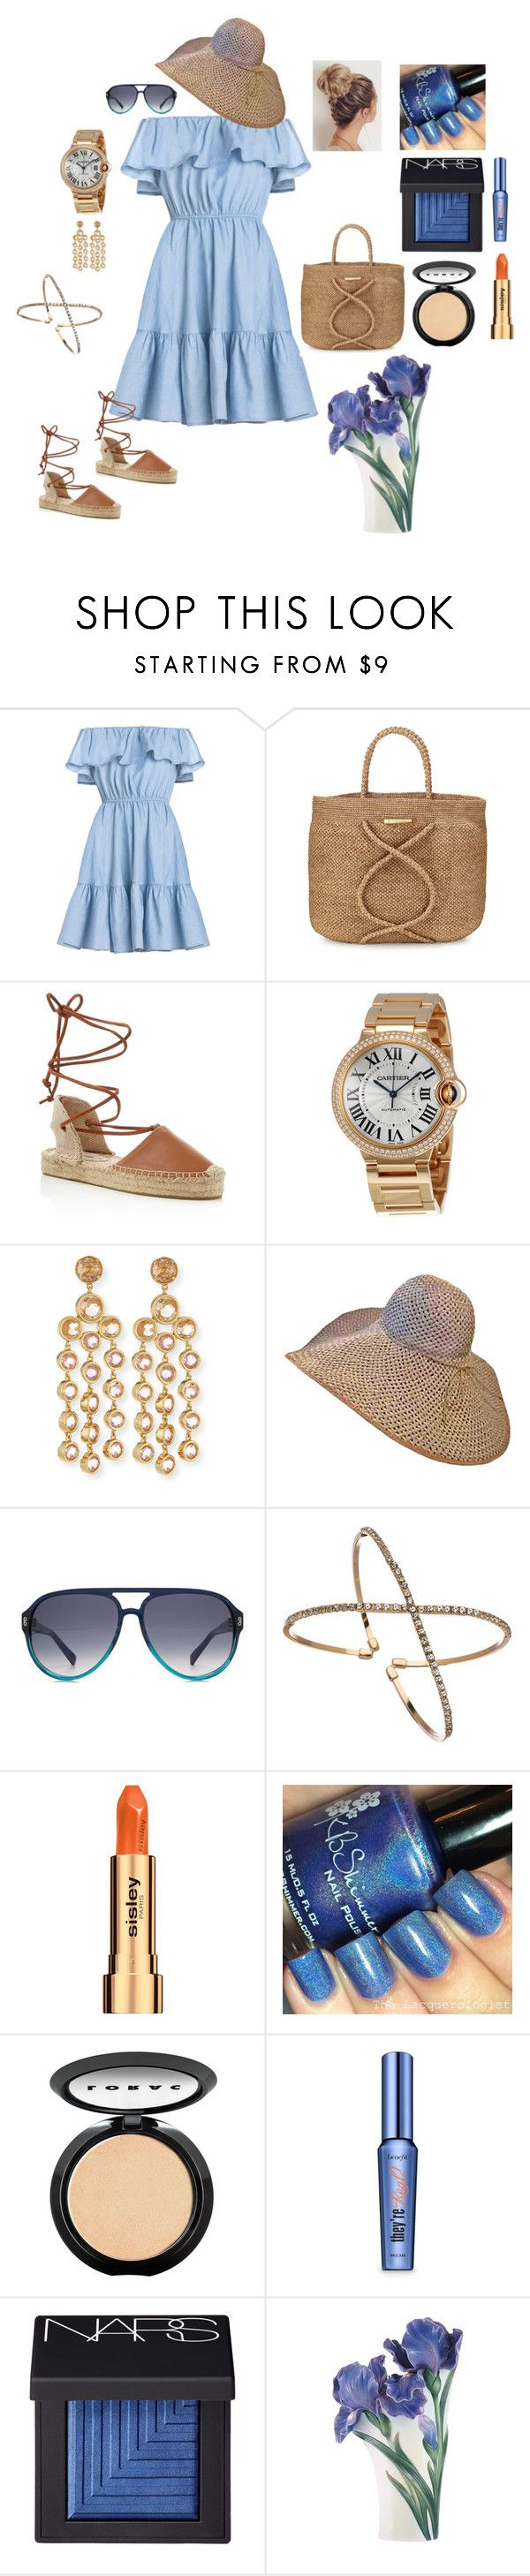 """""""Blue Sky"""" by glamoriffica ❤ liked on Polyvore featuring ViX, Soludos, Cartier, Kate Spade, HOOK LDN, Blu Bijoux, Sisley, LORAC, Benefit and NARS Cosmetics"""